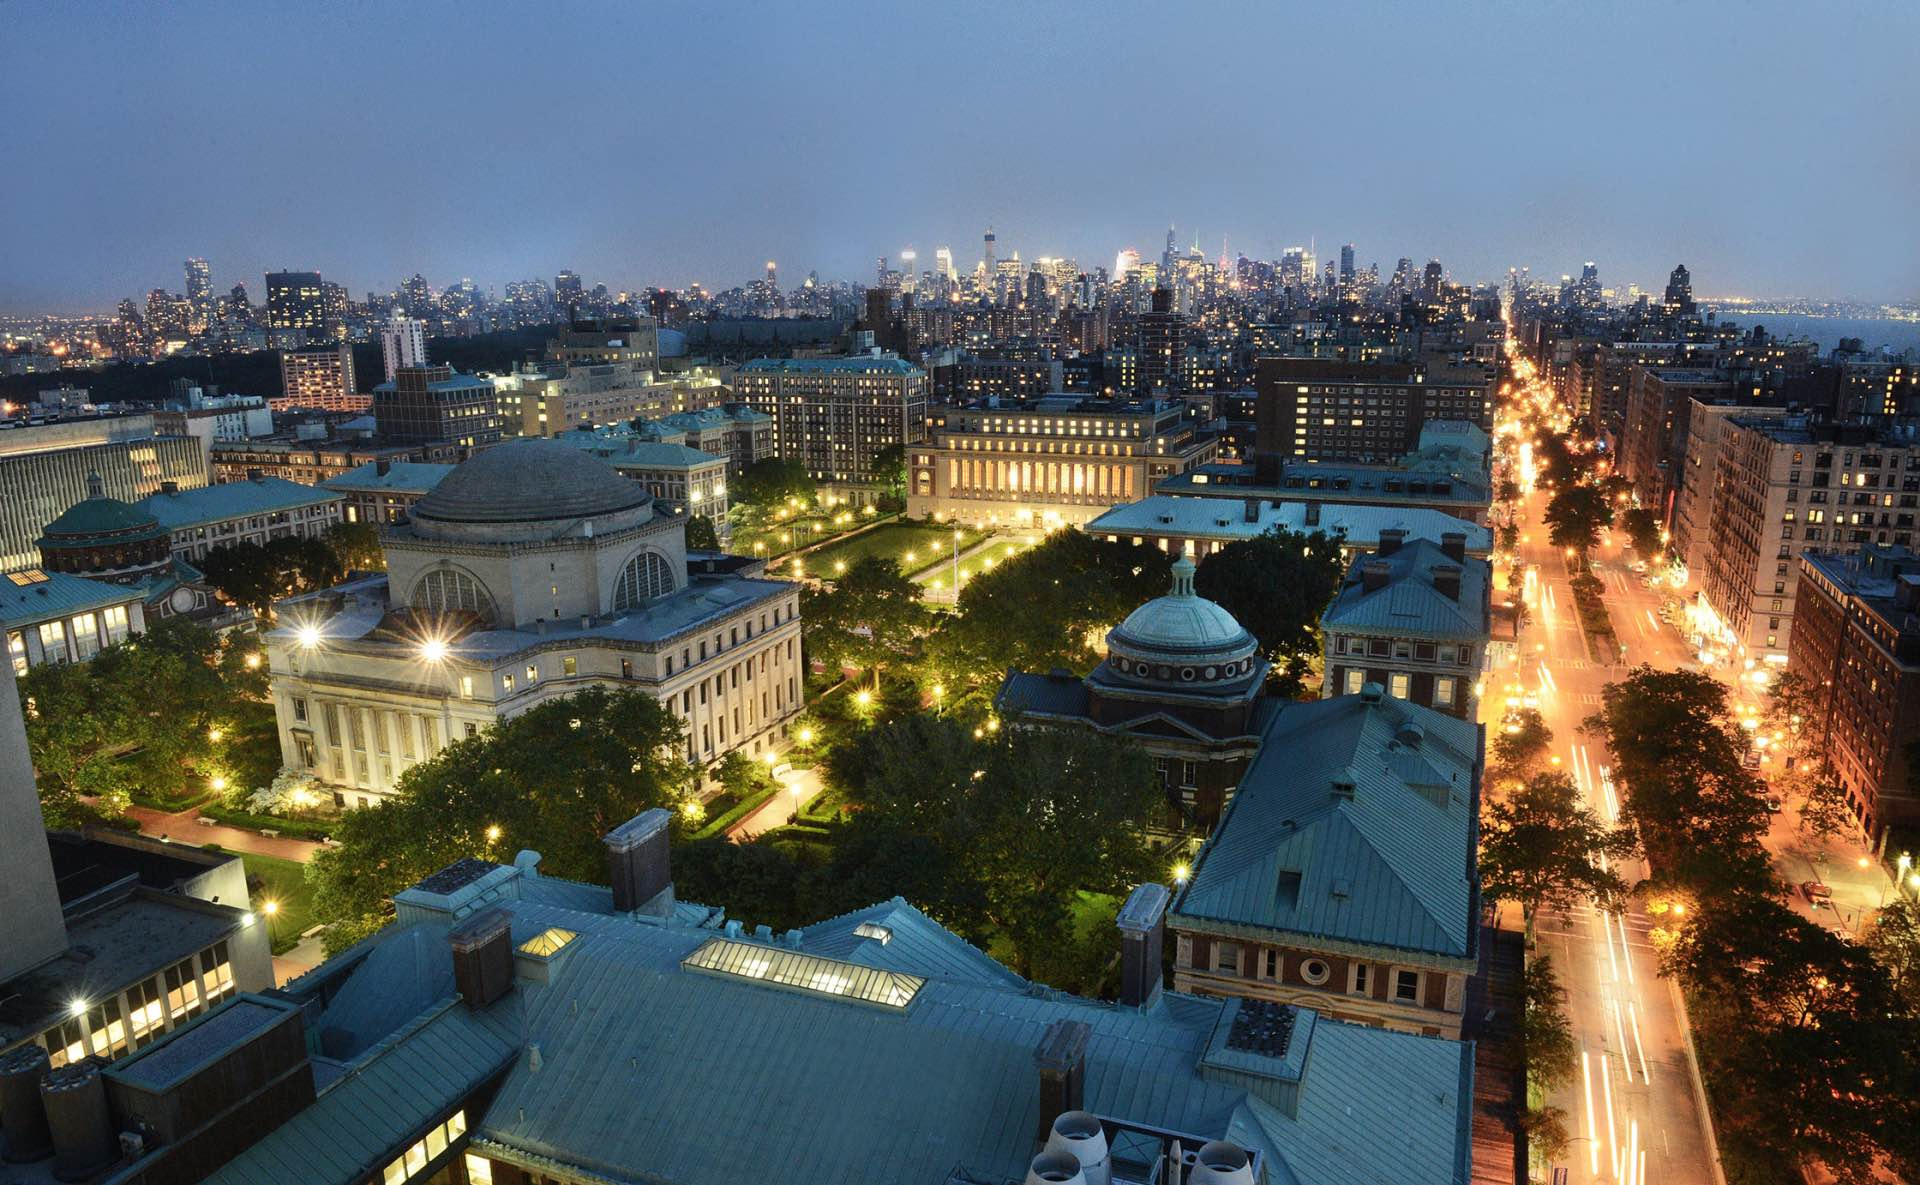 Campus of Columbia University